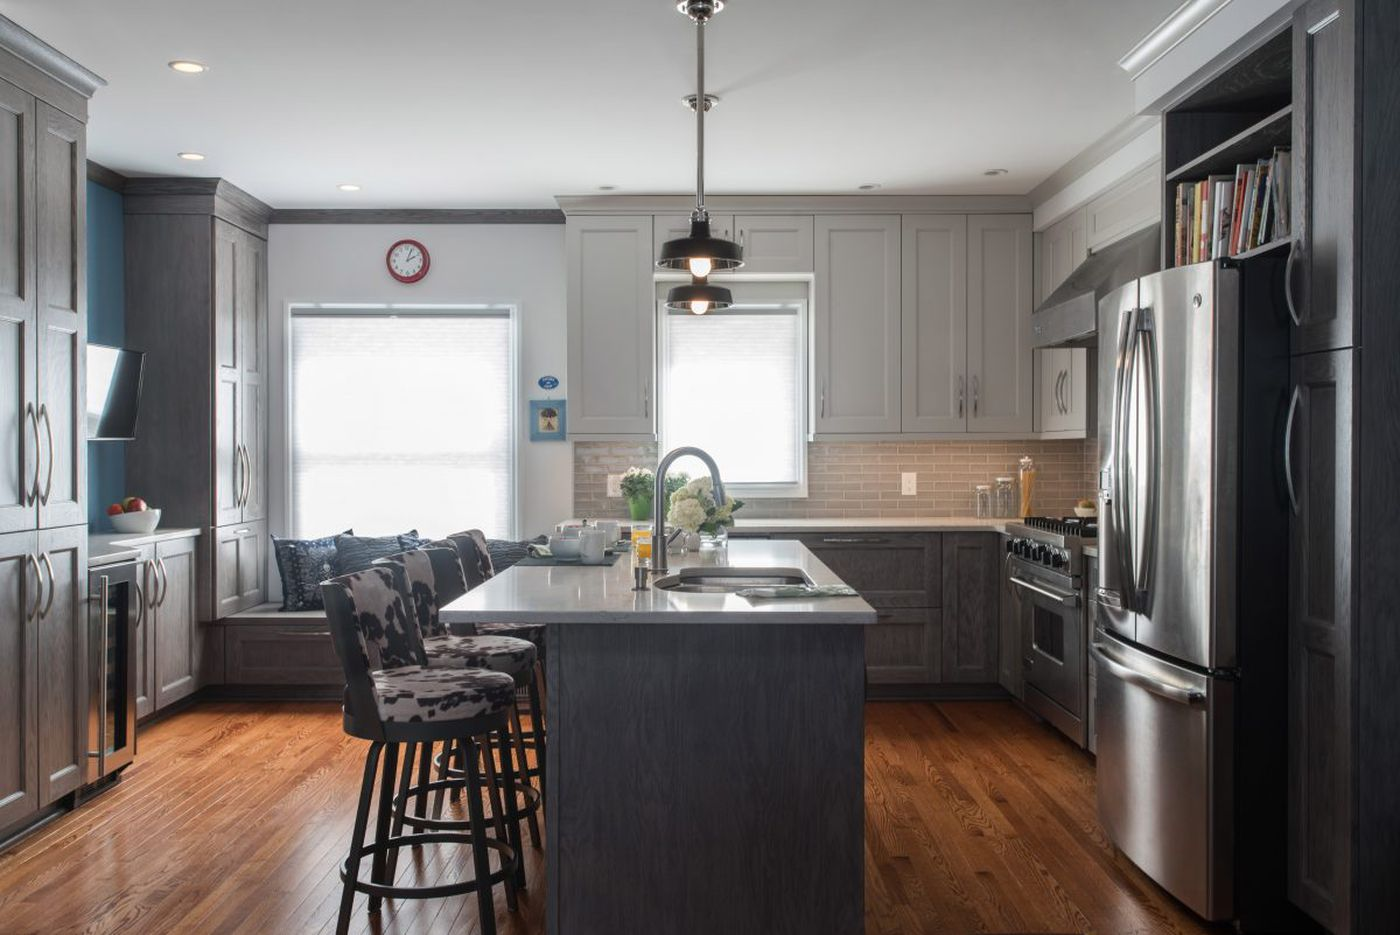 The top priority in kitchen makeovers? A place to put everything